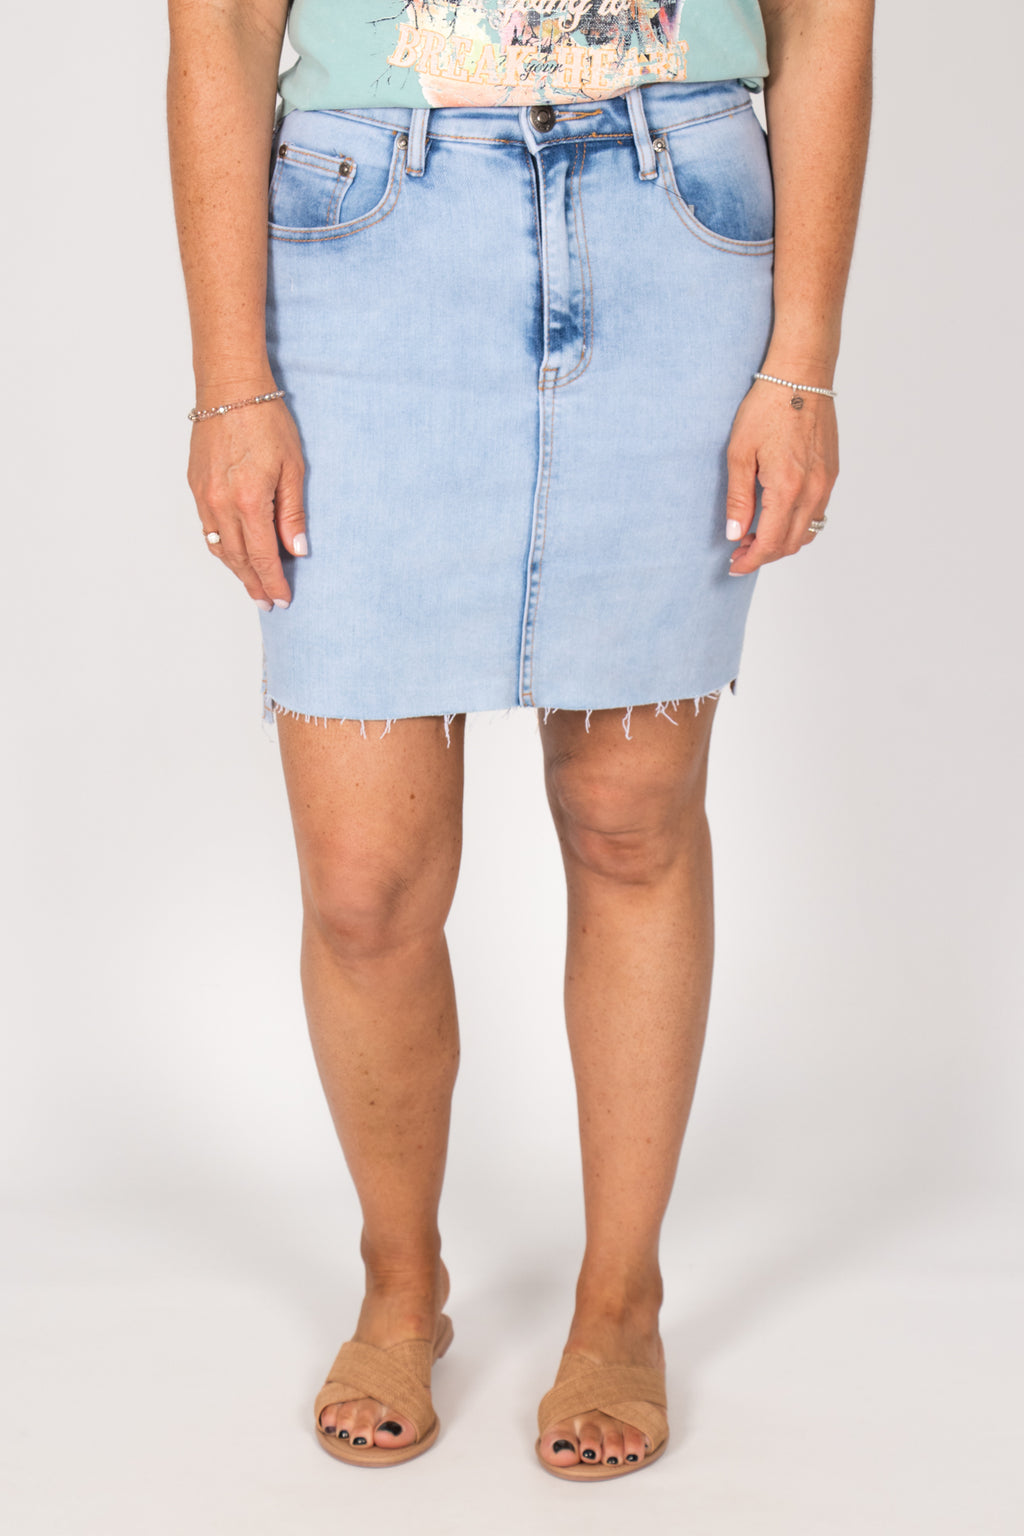 Carlin Denim Skirt in Light